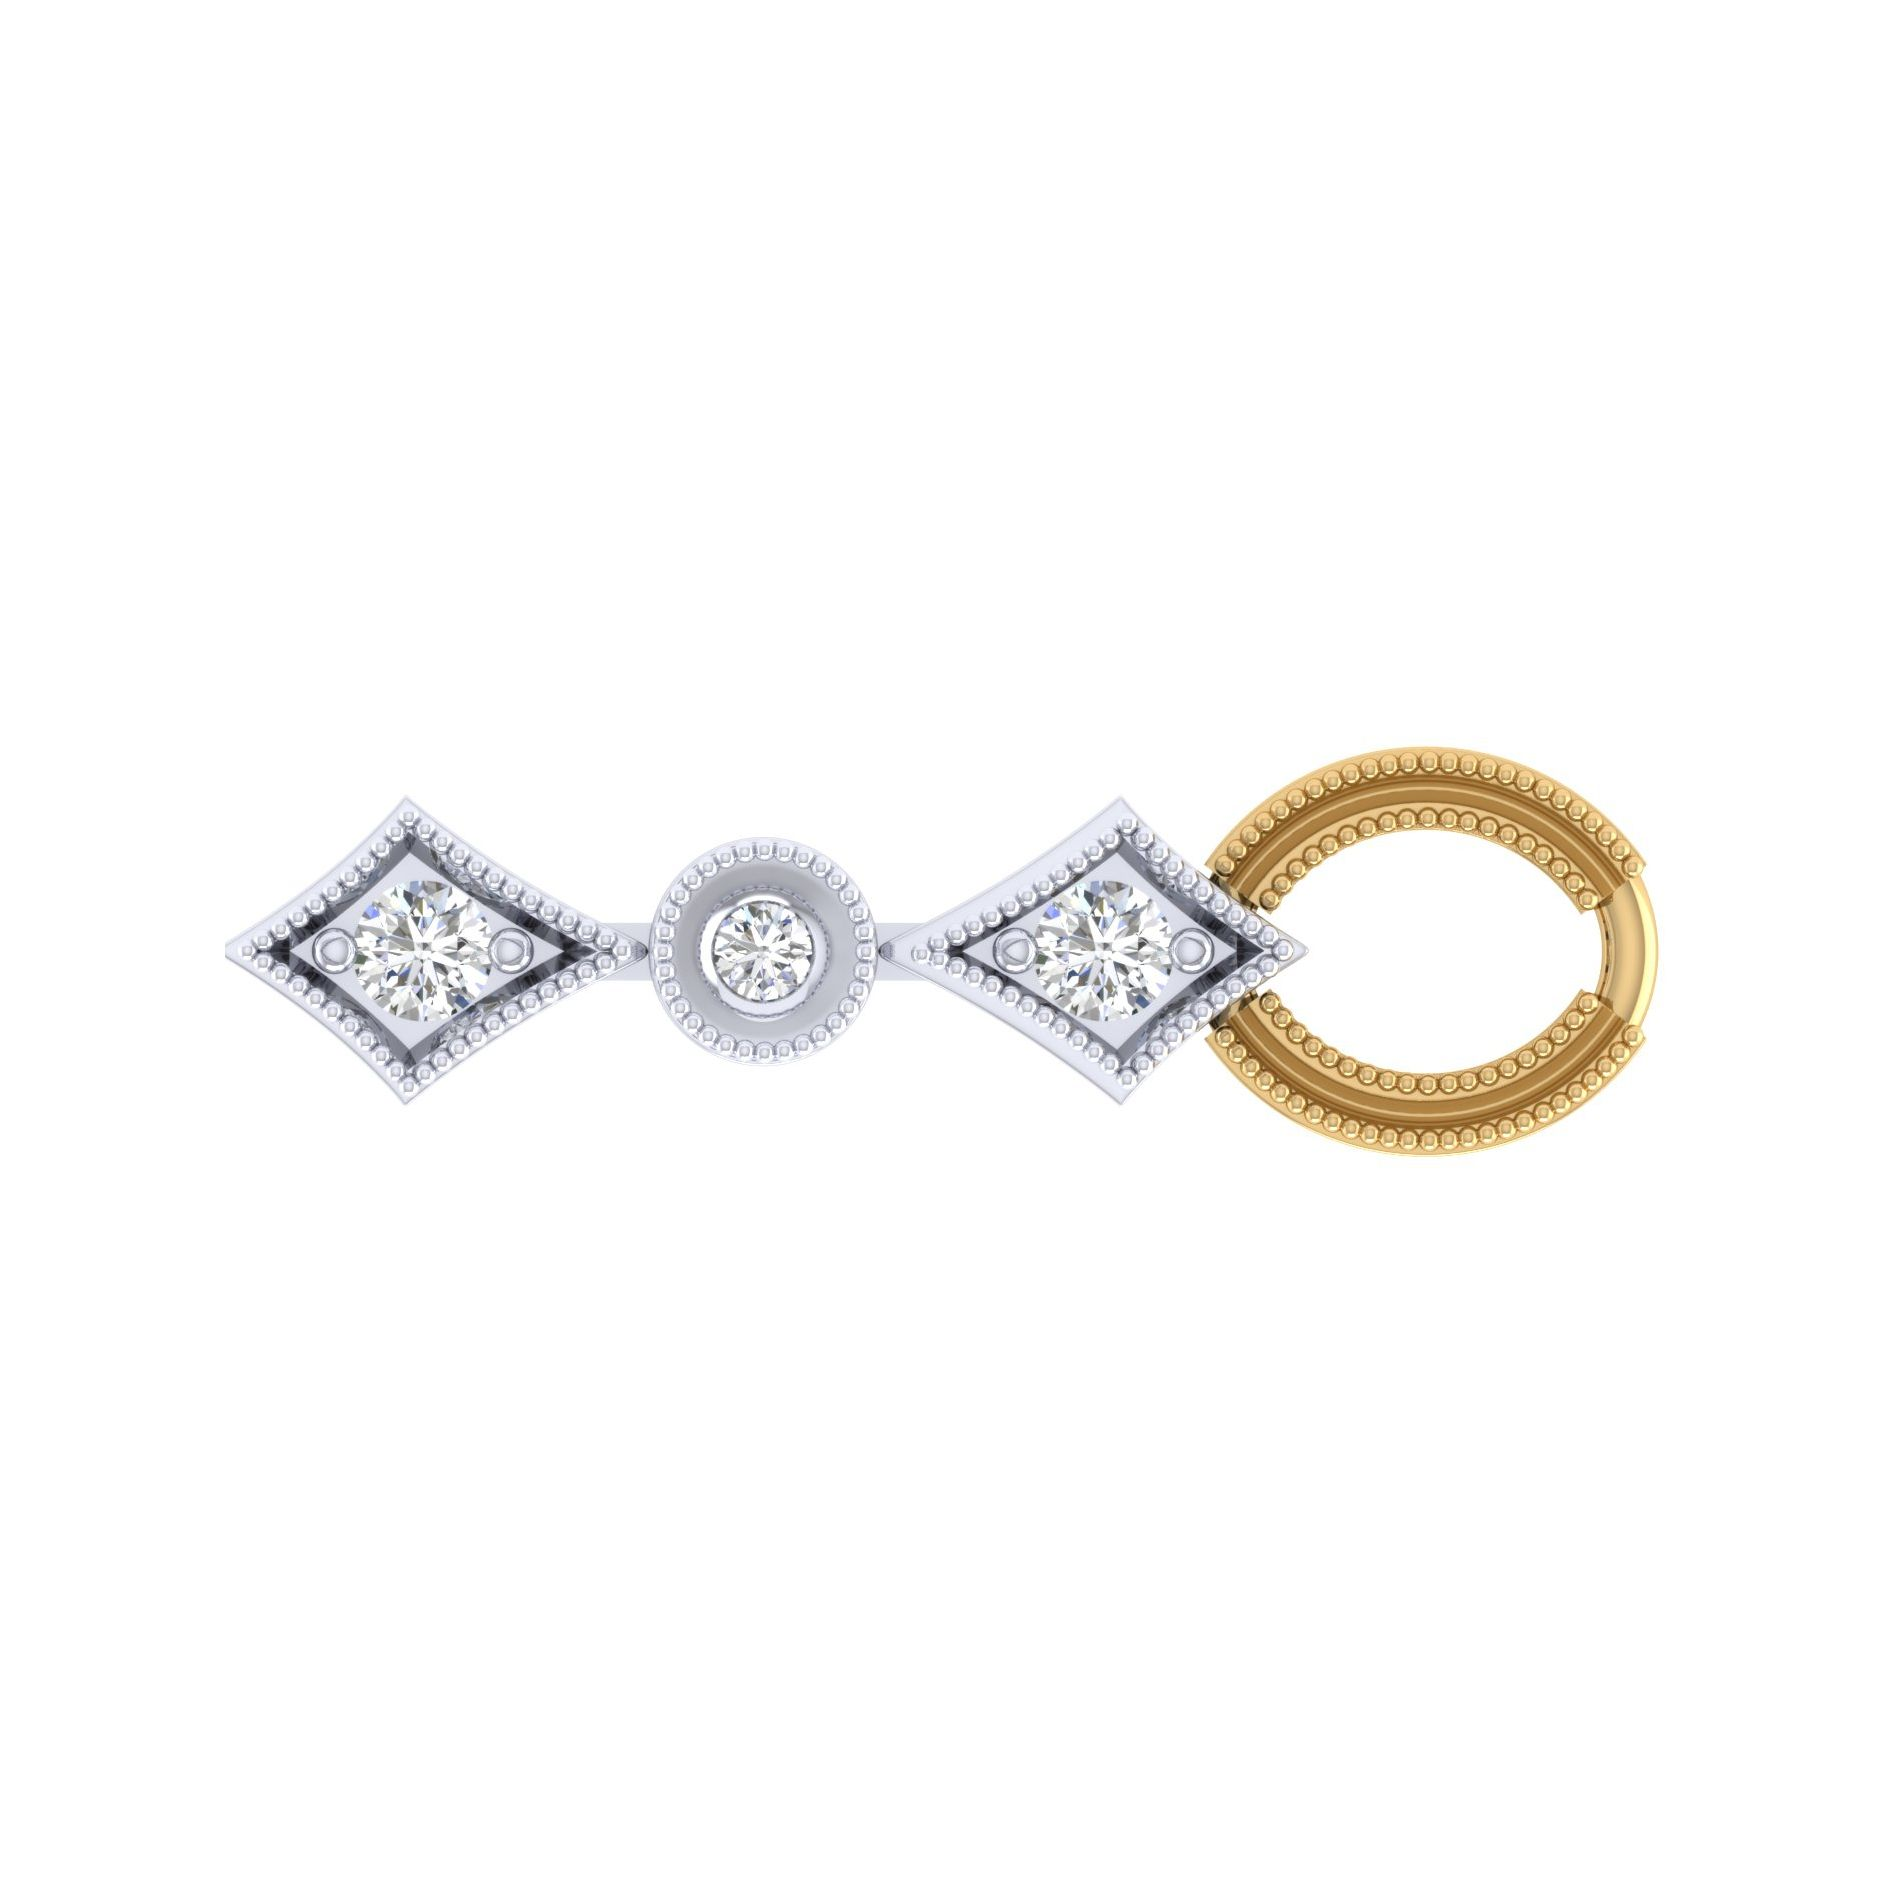 Bracelets - YELLOW/WHITE GOLD TENNIS DIAMOND BRACELET - image #2